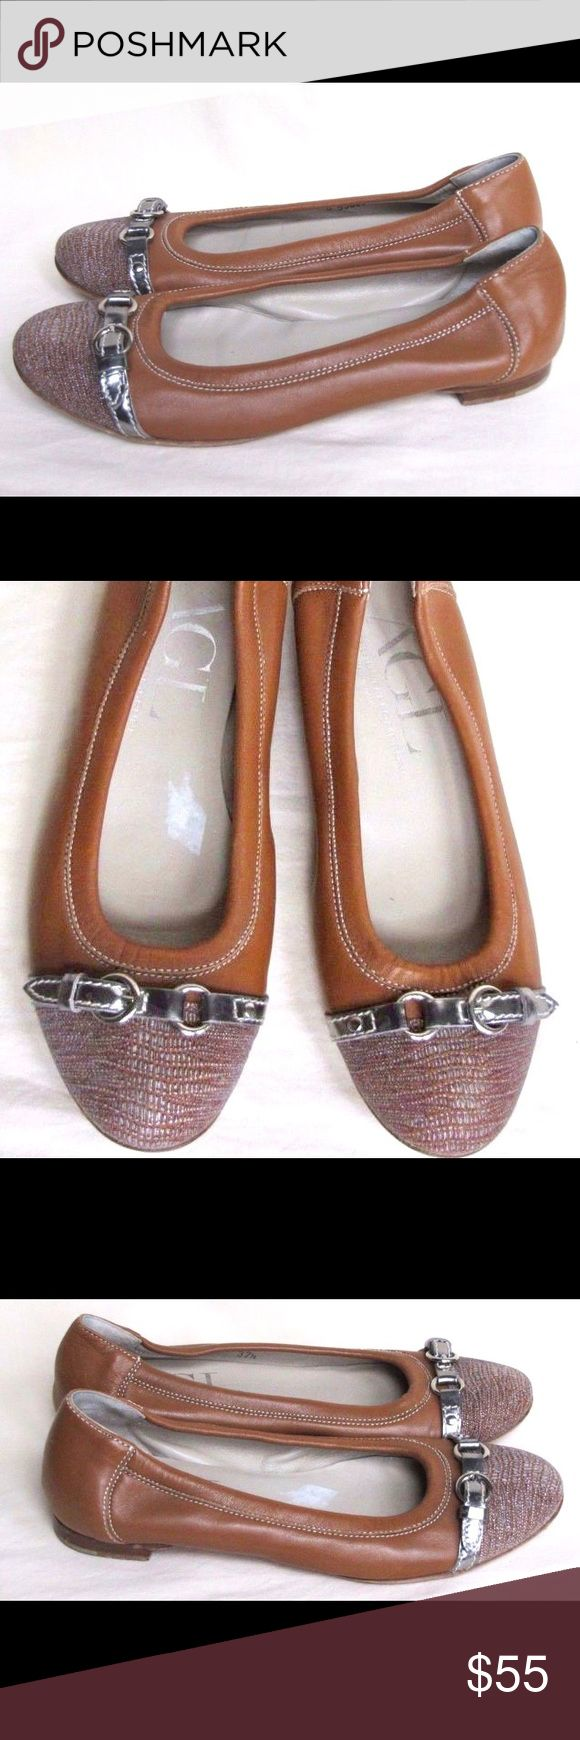 AGL Brown Camel Captoe Leather Flats Women's Attilio Giusti Leombruni AGL Brown/Camel Leather Ballet Flats. Size 37.5EU/7.5US.  Fabric cap toe with decorative buckle. Model #558034. Overall, good pre-owned condition. Soles have some scuffing and slight wear on the heels. Feel free to ask questions. Agl Shoes Flats & Loafers